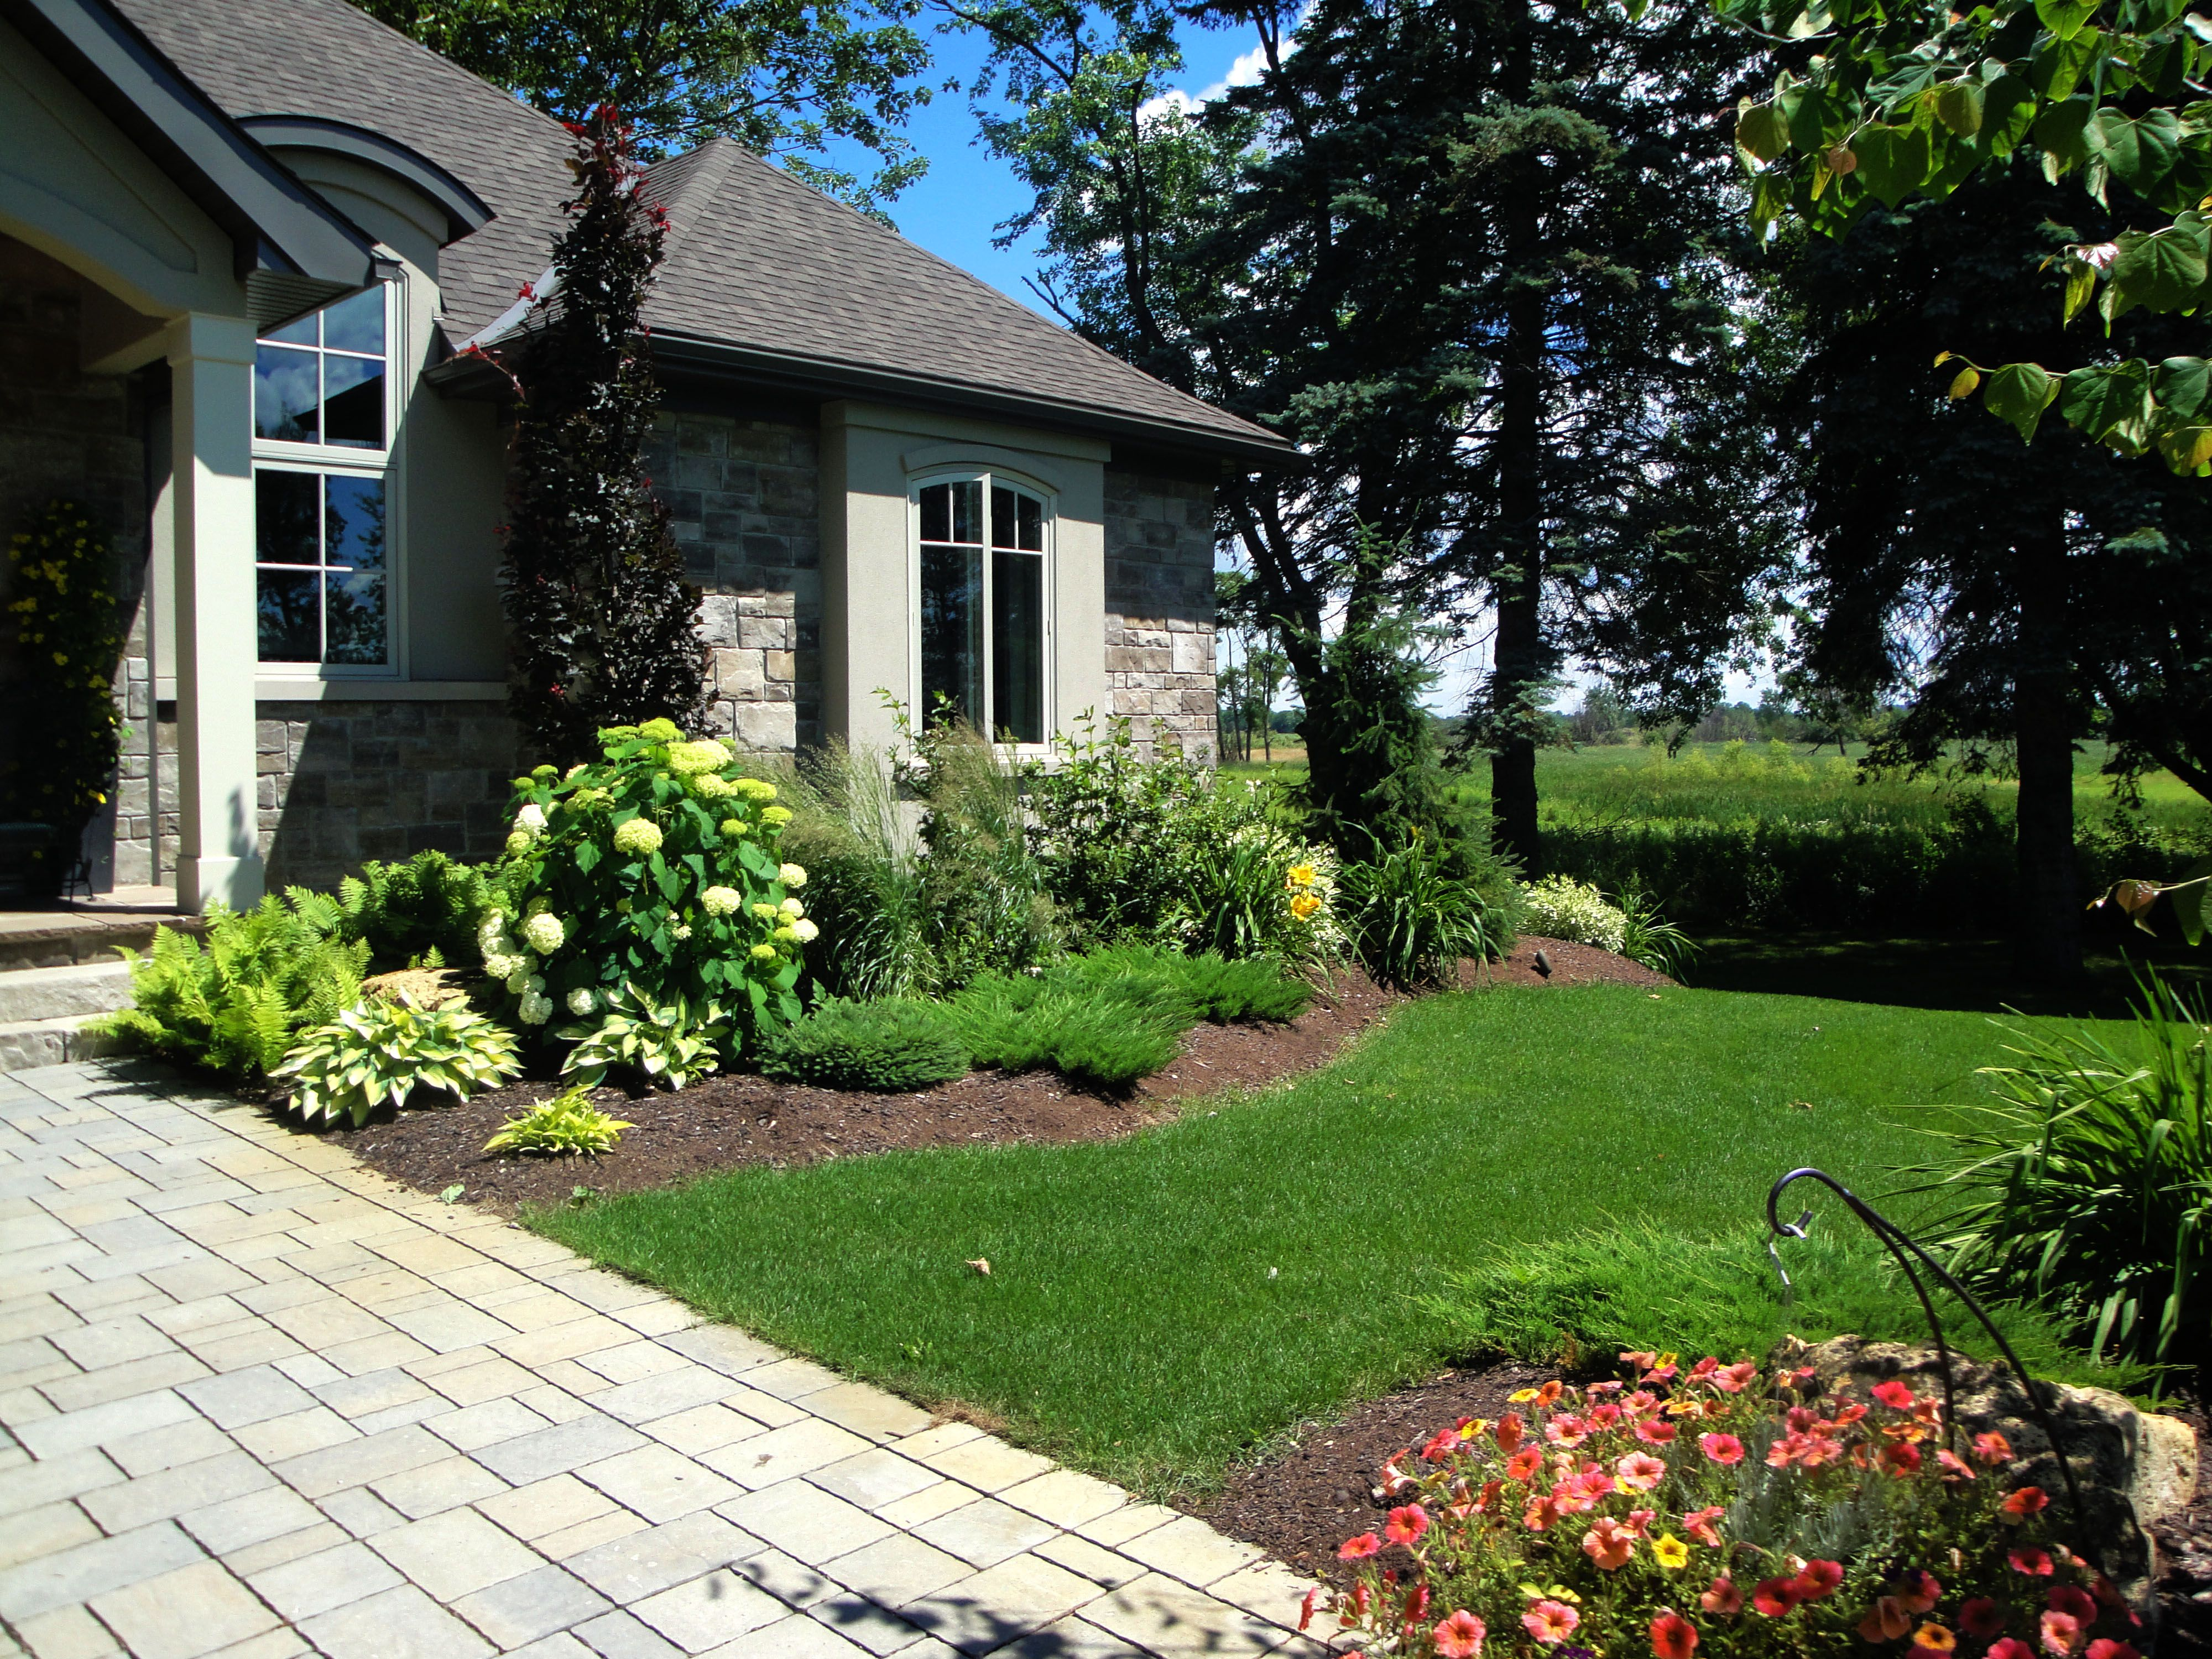 Hydrangeas, junipers, hostas, ferns, and grass in a front ...